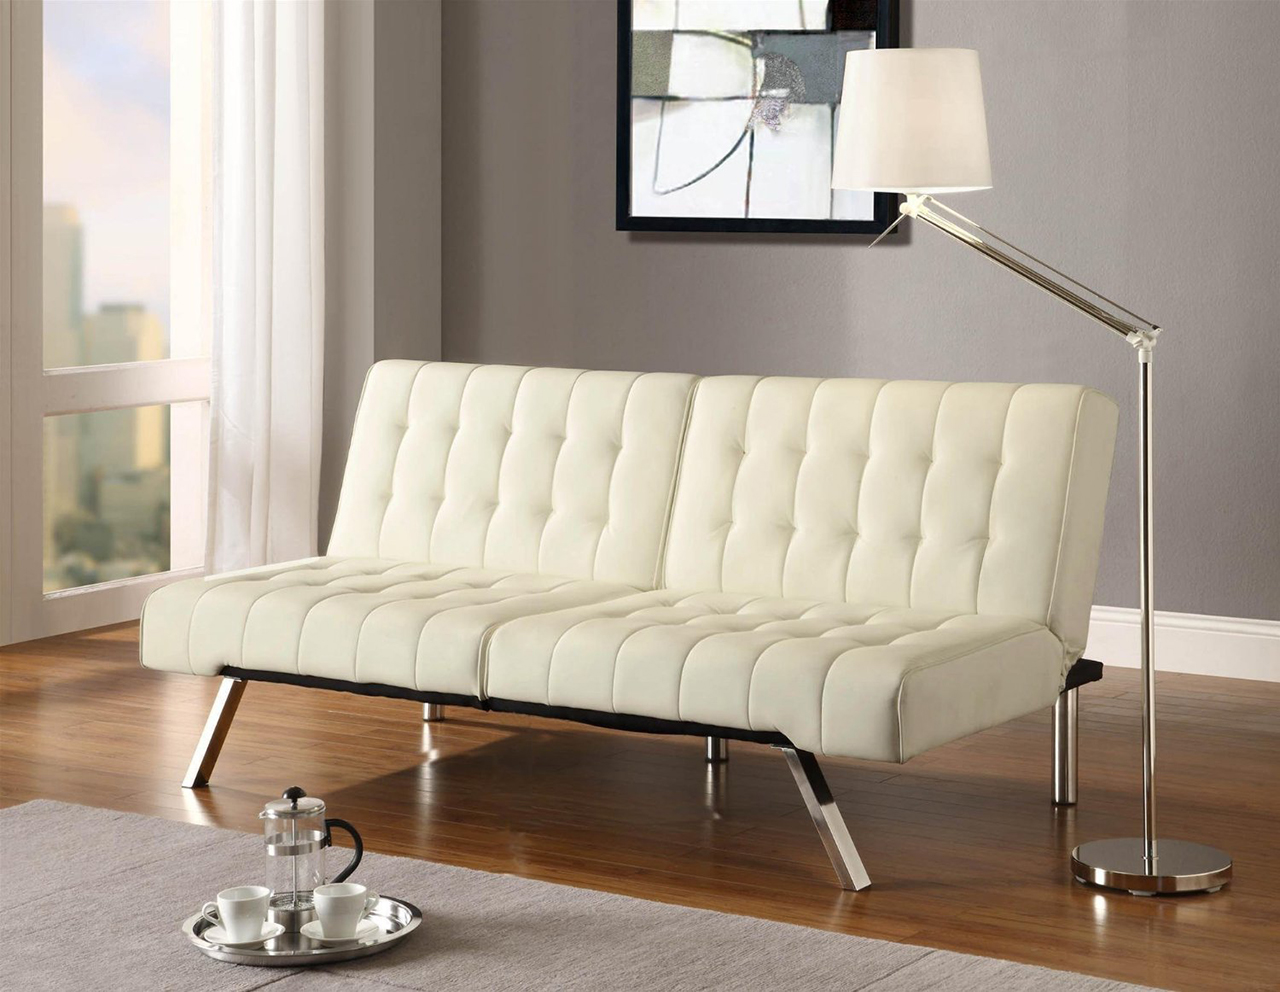 Most comfortable sofa ever - Dhm Convertible Sofa In Vanilla